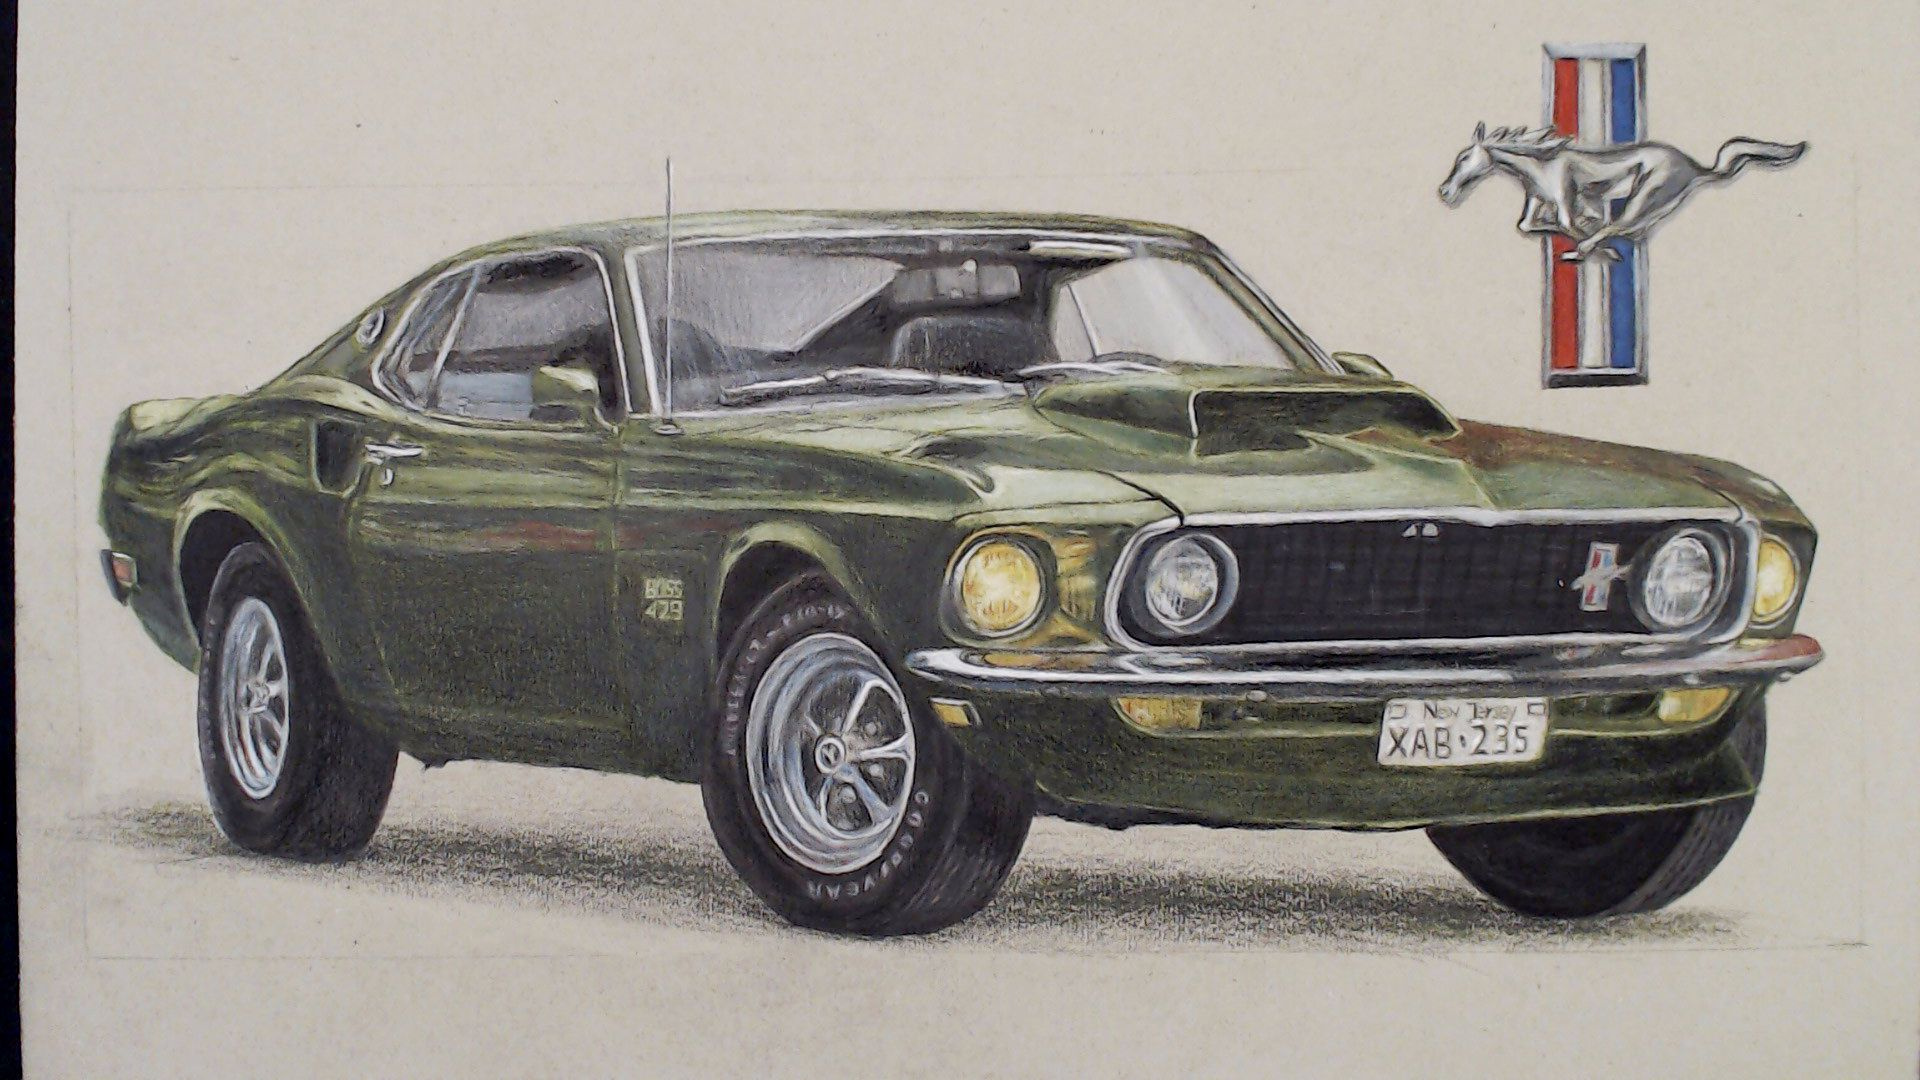 John Wick S Mustang Drawing Tutorial Easy Drawing And Learning Check Out My New You Tube Art Channel Draw2night Mustang Drawing Mustang John Wick Mustang